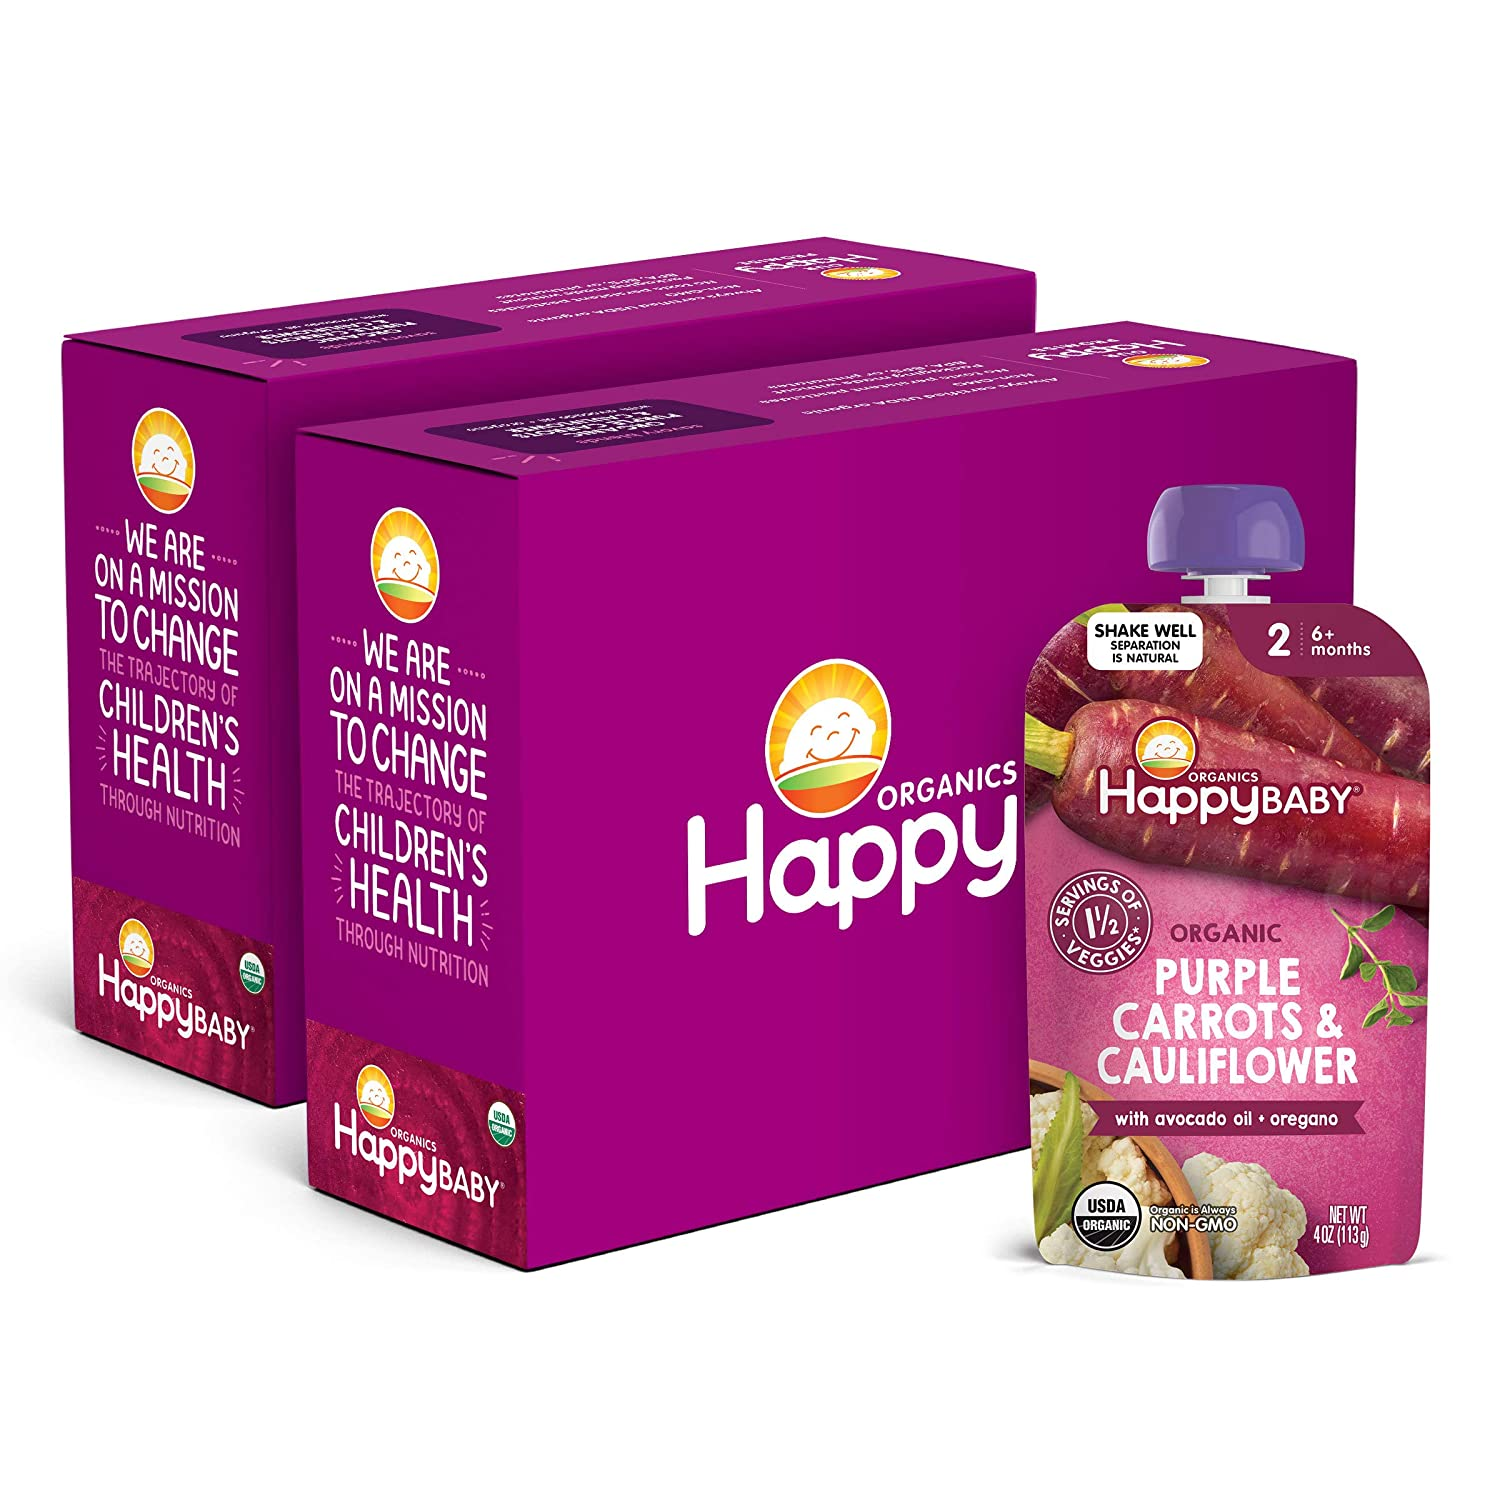 Happy Baby Organics Savory Blends Stage 2 Baby Food, Purple Carrots & Cauliflower with Avocado Oil + Oregano, 4 Ounce (Pack of 16) packaging may vary